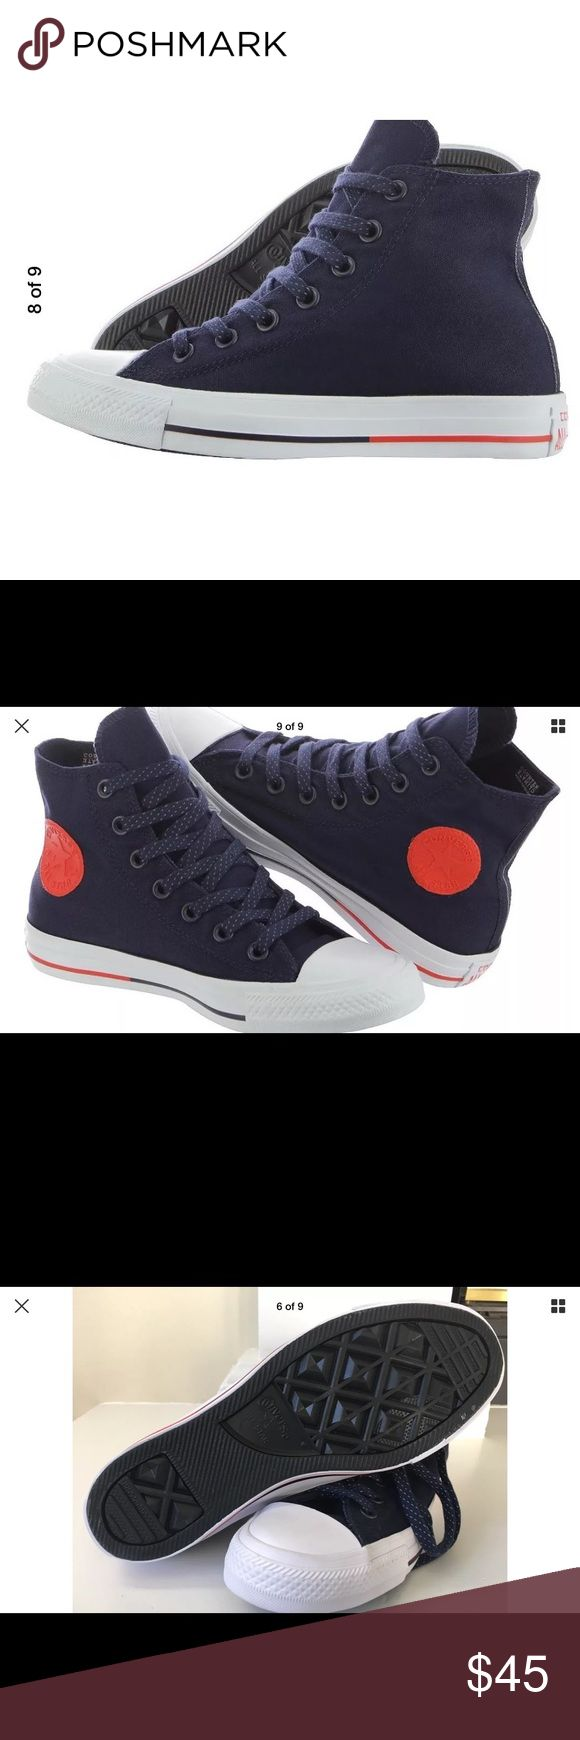 Converse counter climate obsidian canvas shoes 7 9 Brand new water repellent counter culture hi tops in Obsidian (dark blue-black) with orange emblem and detail on sole. Navy and white laces. New, no box. Never worn! Ladies 9, Men's 7 Converse Shoes Sneakers